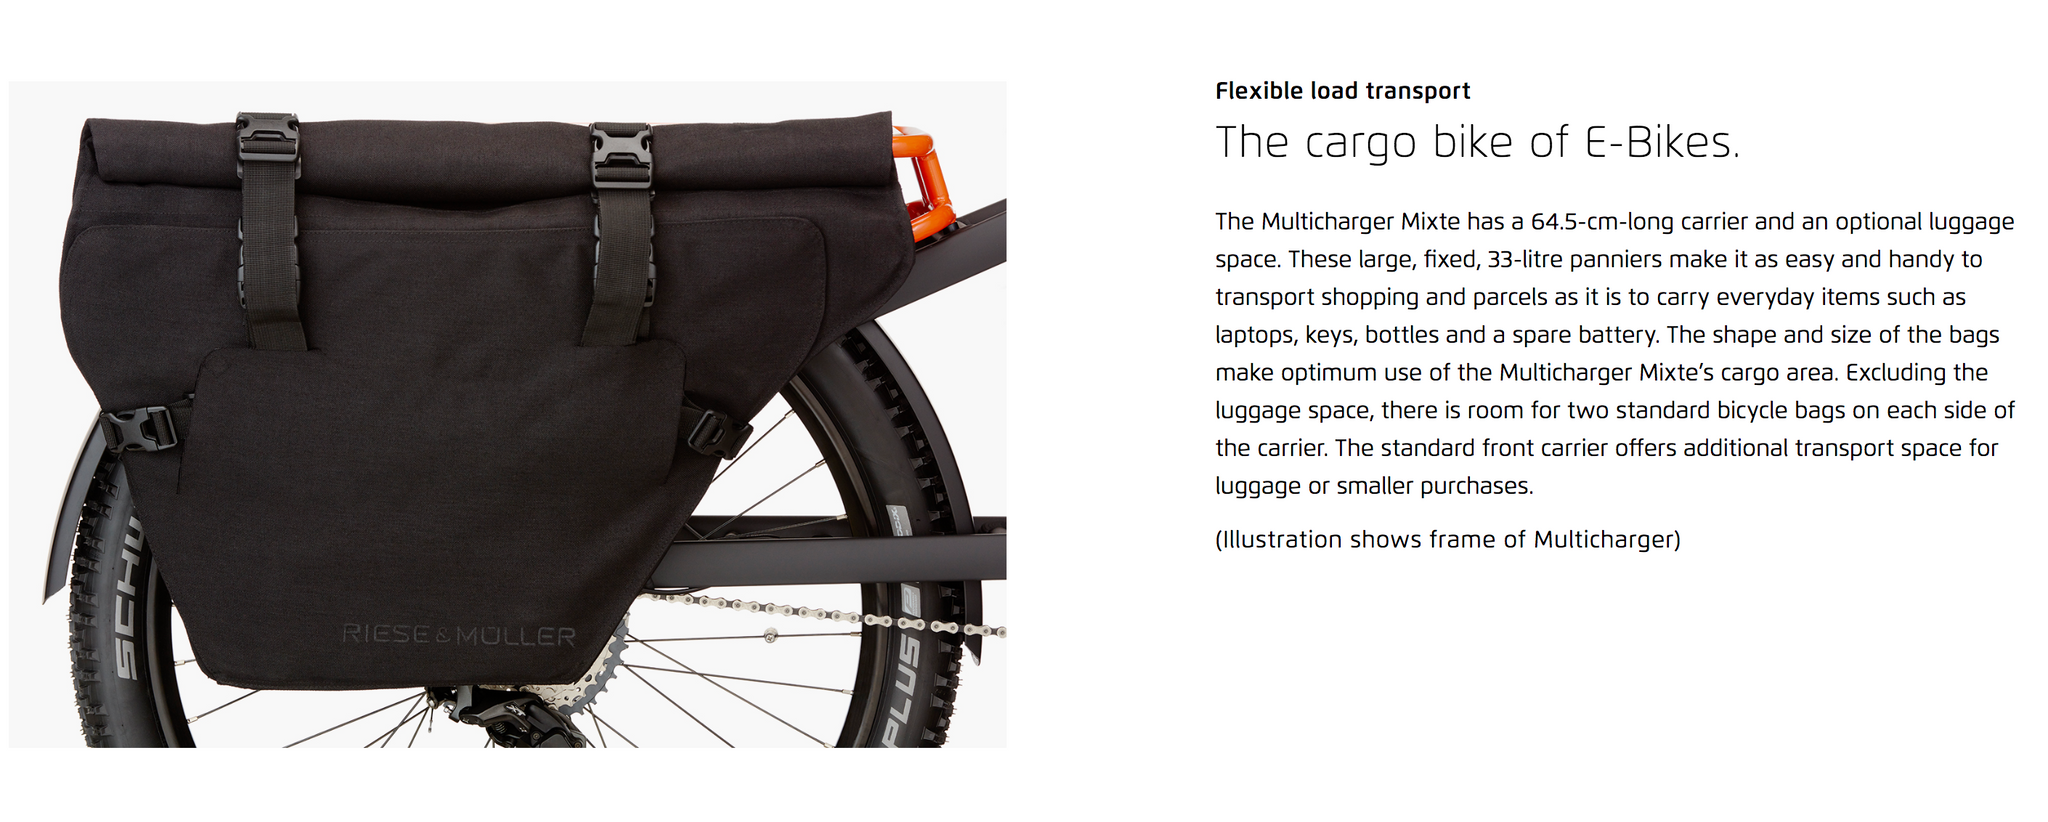 Flexible load transport  The cargo bike of E-Bikes. The Multicharger Mixte has a 64.5-cm-long carrier and an optional luggage space. These large, fixed, 33-litre panniers make it as easy and handy to transport shopping and parcels as it is to carry everyday items such as laptops, keys, bottles and a spare battery. The shape and size of the bags make optimum use of the Multicharger Mixte's cargo area. Excluding the luggage space, there is room for two standard bicycle bags on each side of the carrier. The standard front carrier offers additional transport space for luggage or smaller purchases.  (Illustration shows frame of Multicharger)